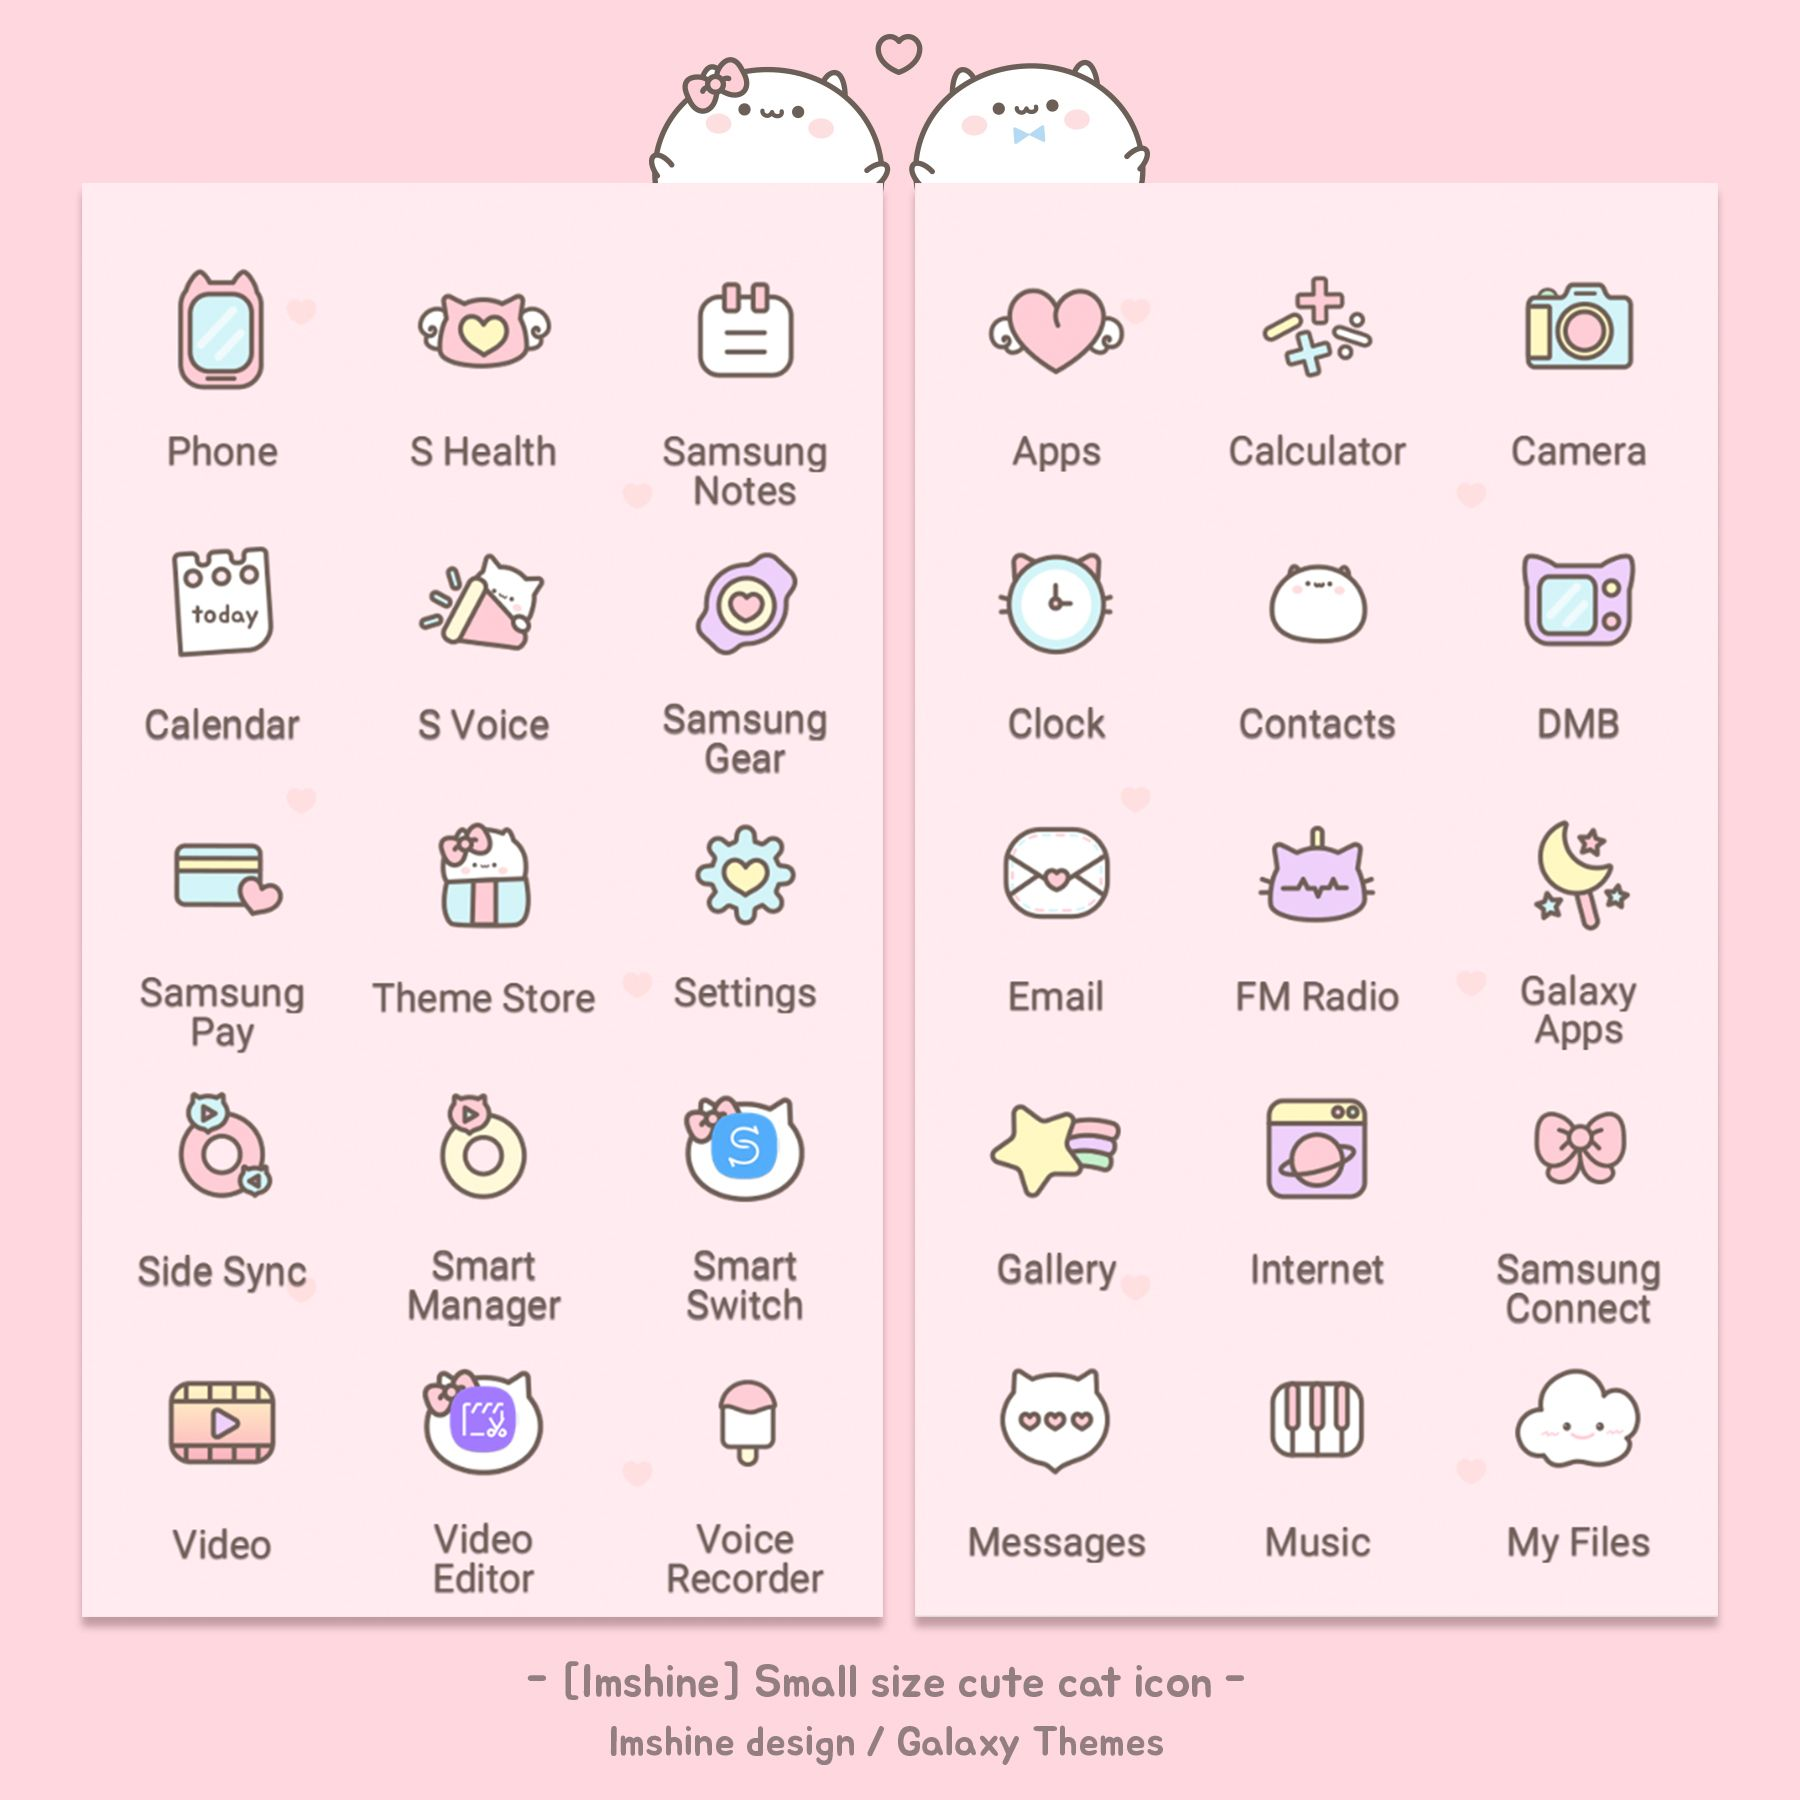 Pink Cute Cat Icon Design Theme App Drawings Icon Design